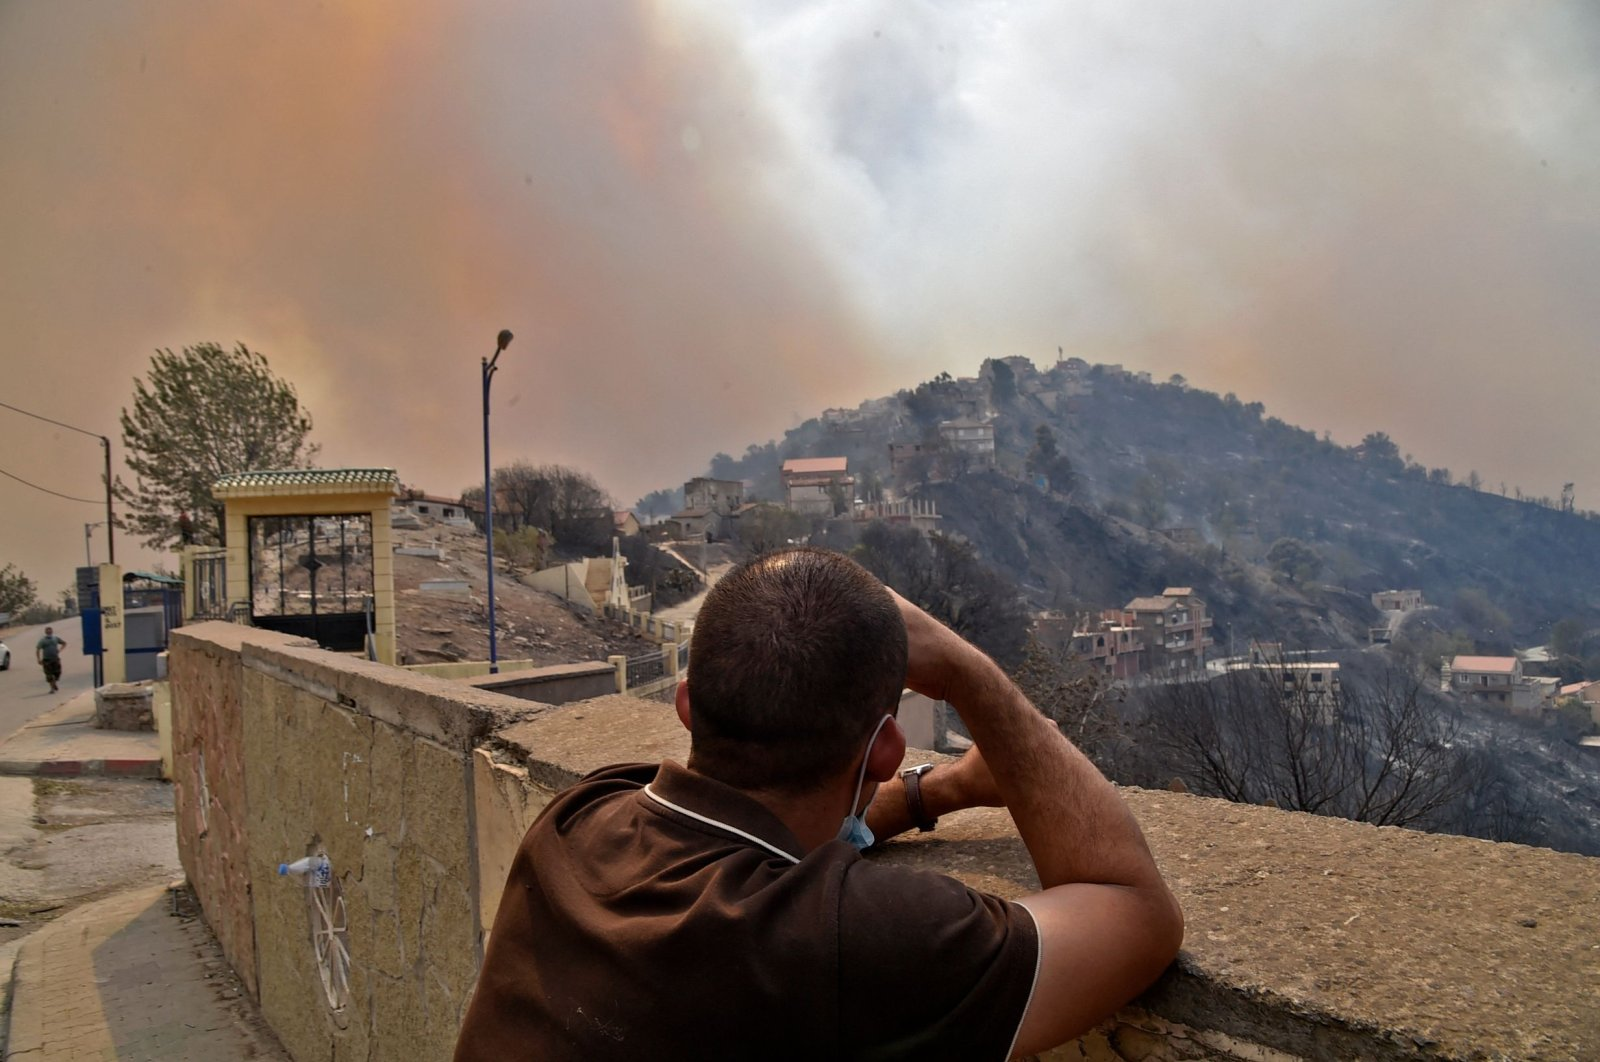 A man looks on as smoke rises from a wildfire in the forested hills of the Kabylie region, east of the capital Algiers, Algeria, on Aug. 10, 2021. (AFP Photo)